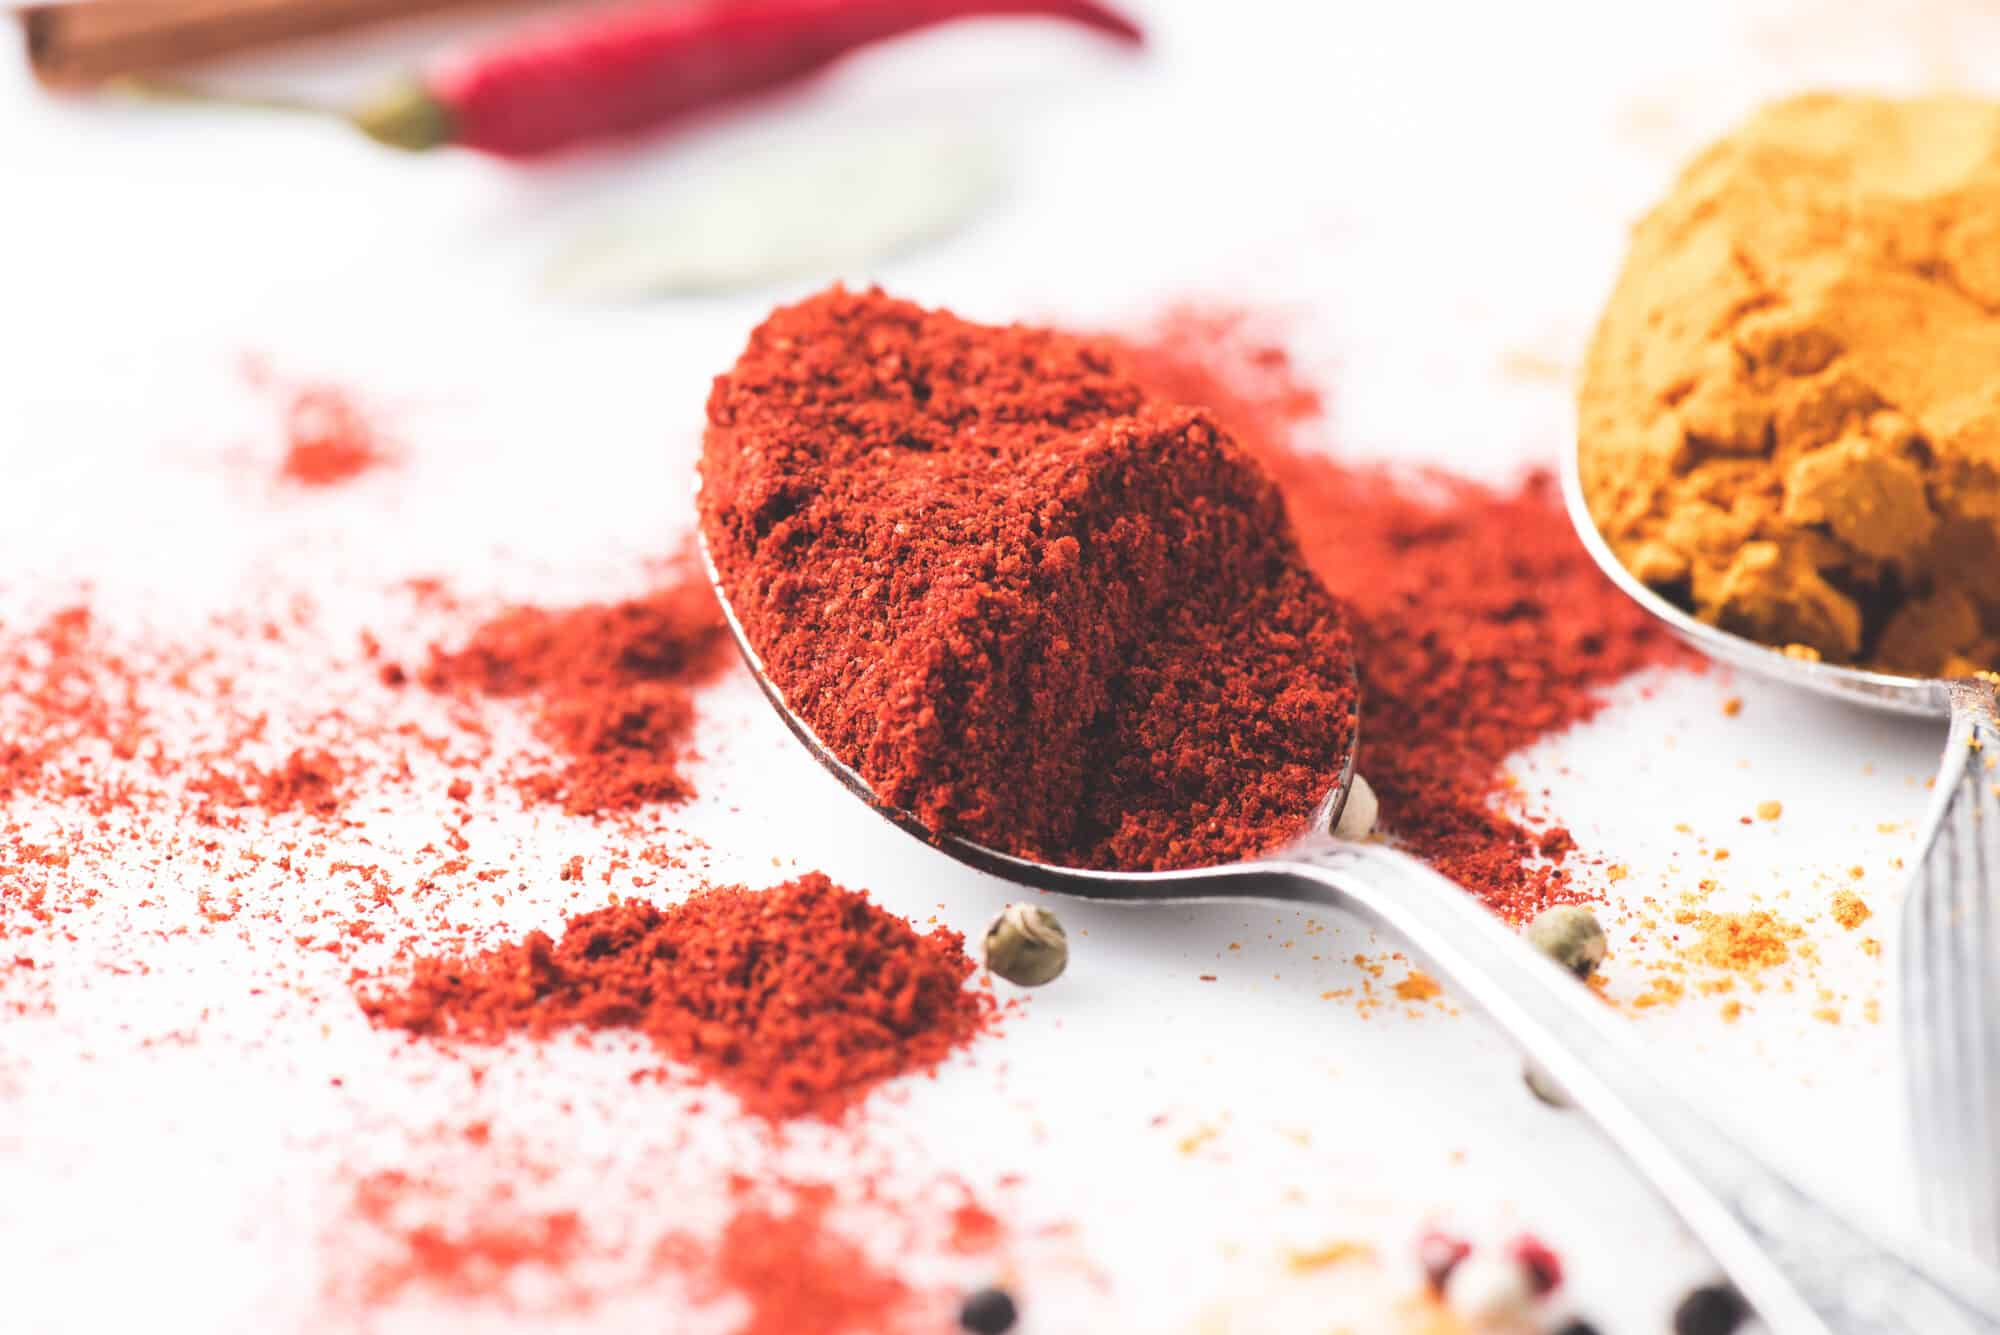 Cooking With Paprika: The Dos And Don'ts